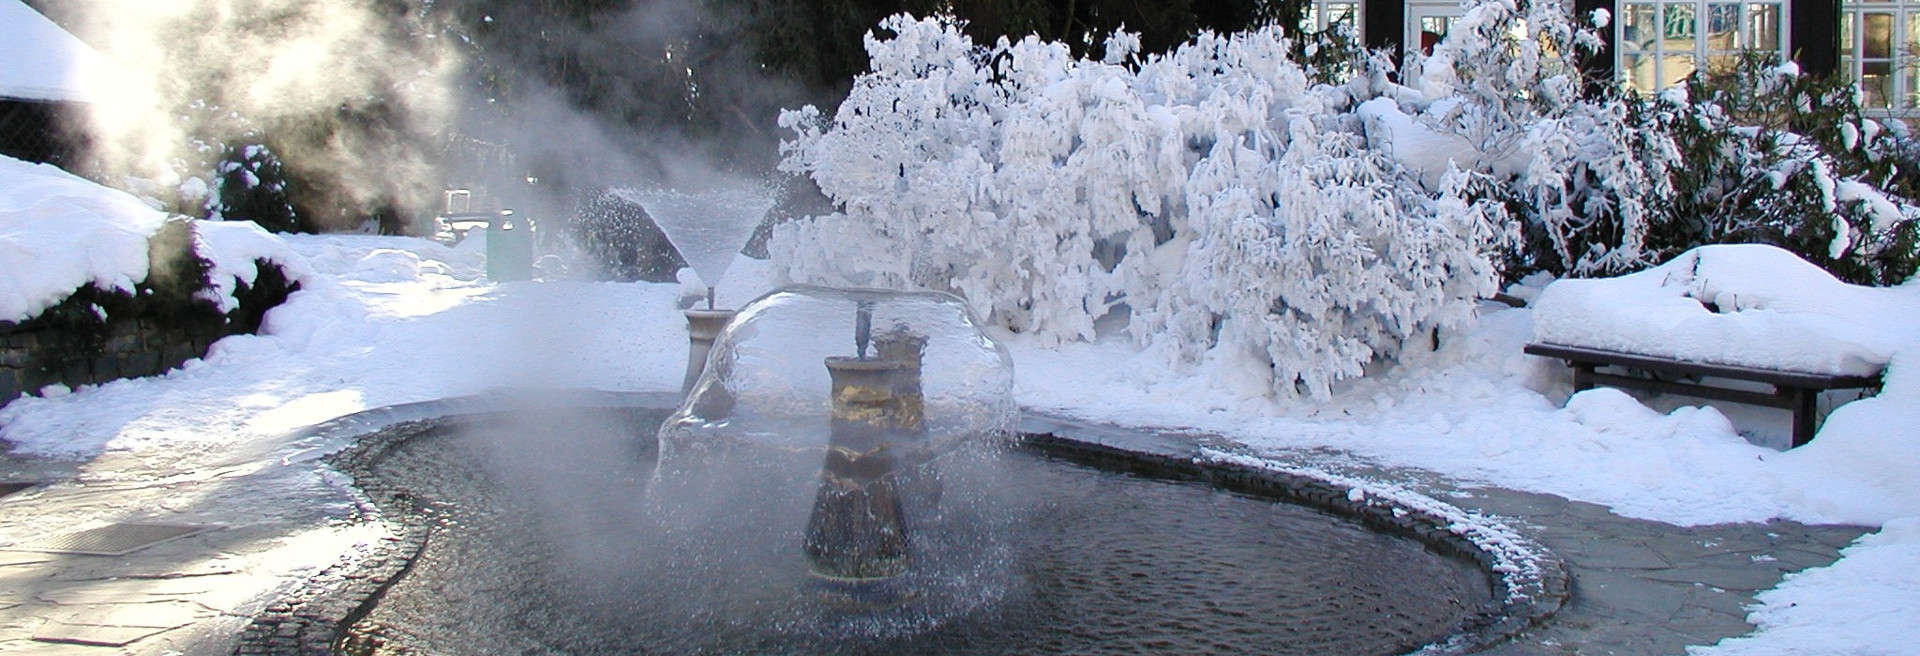 Thermal sulfur springs in THERMALSPA Velké Losiny